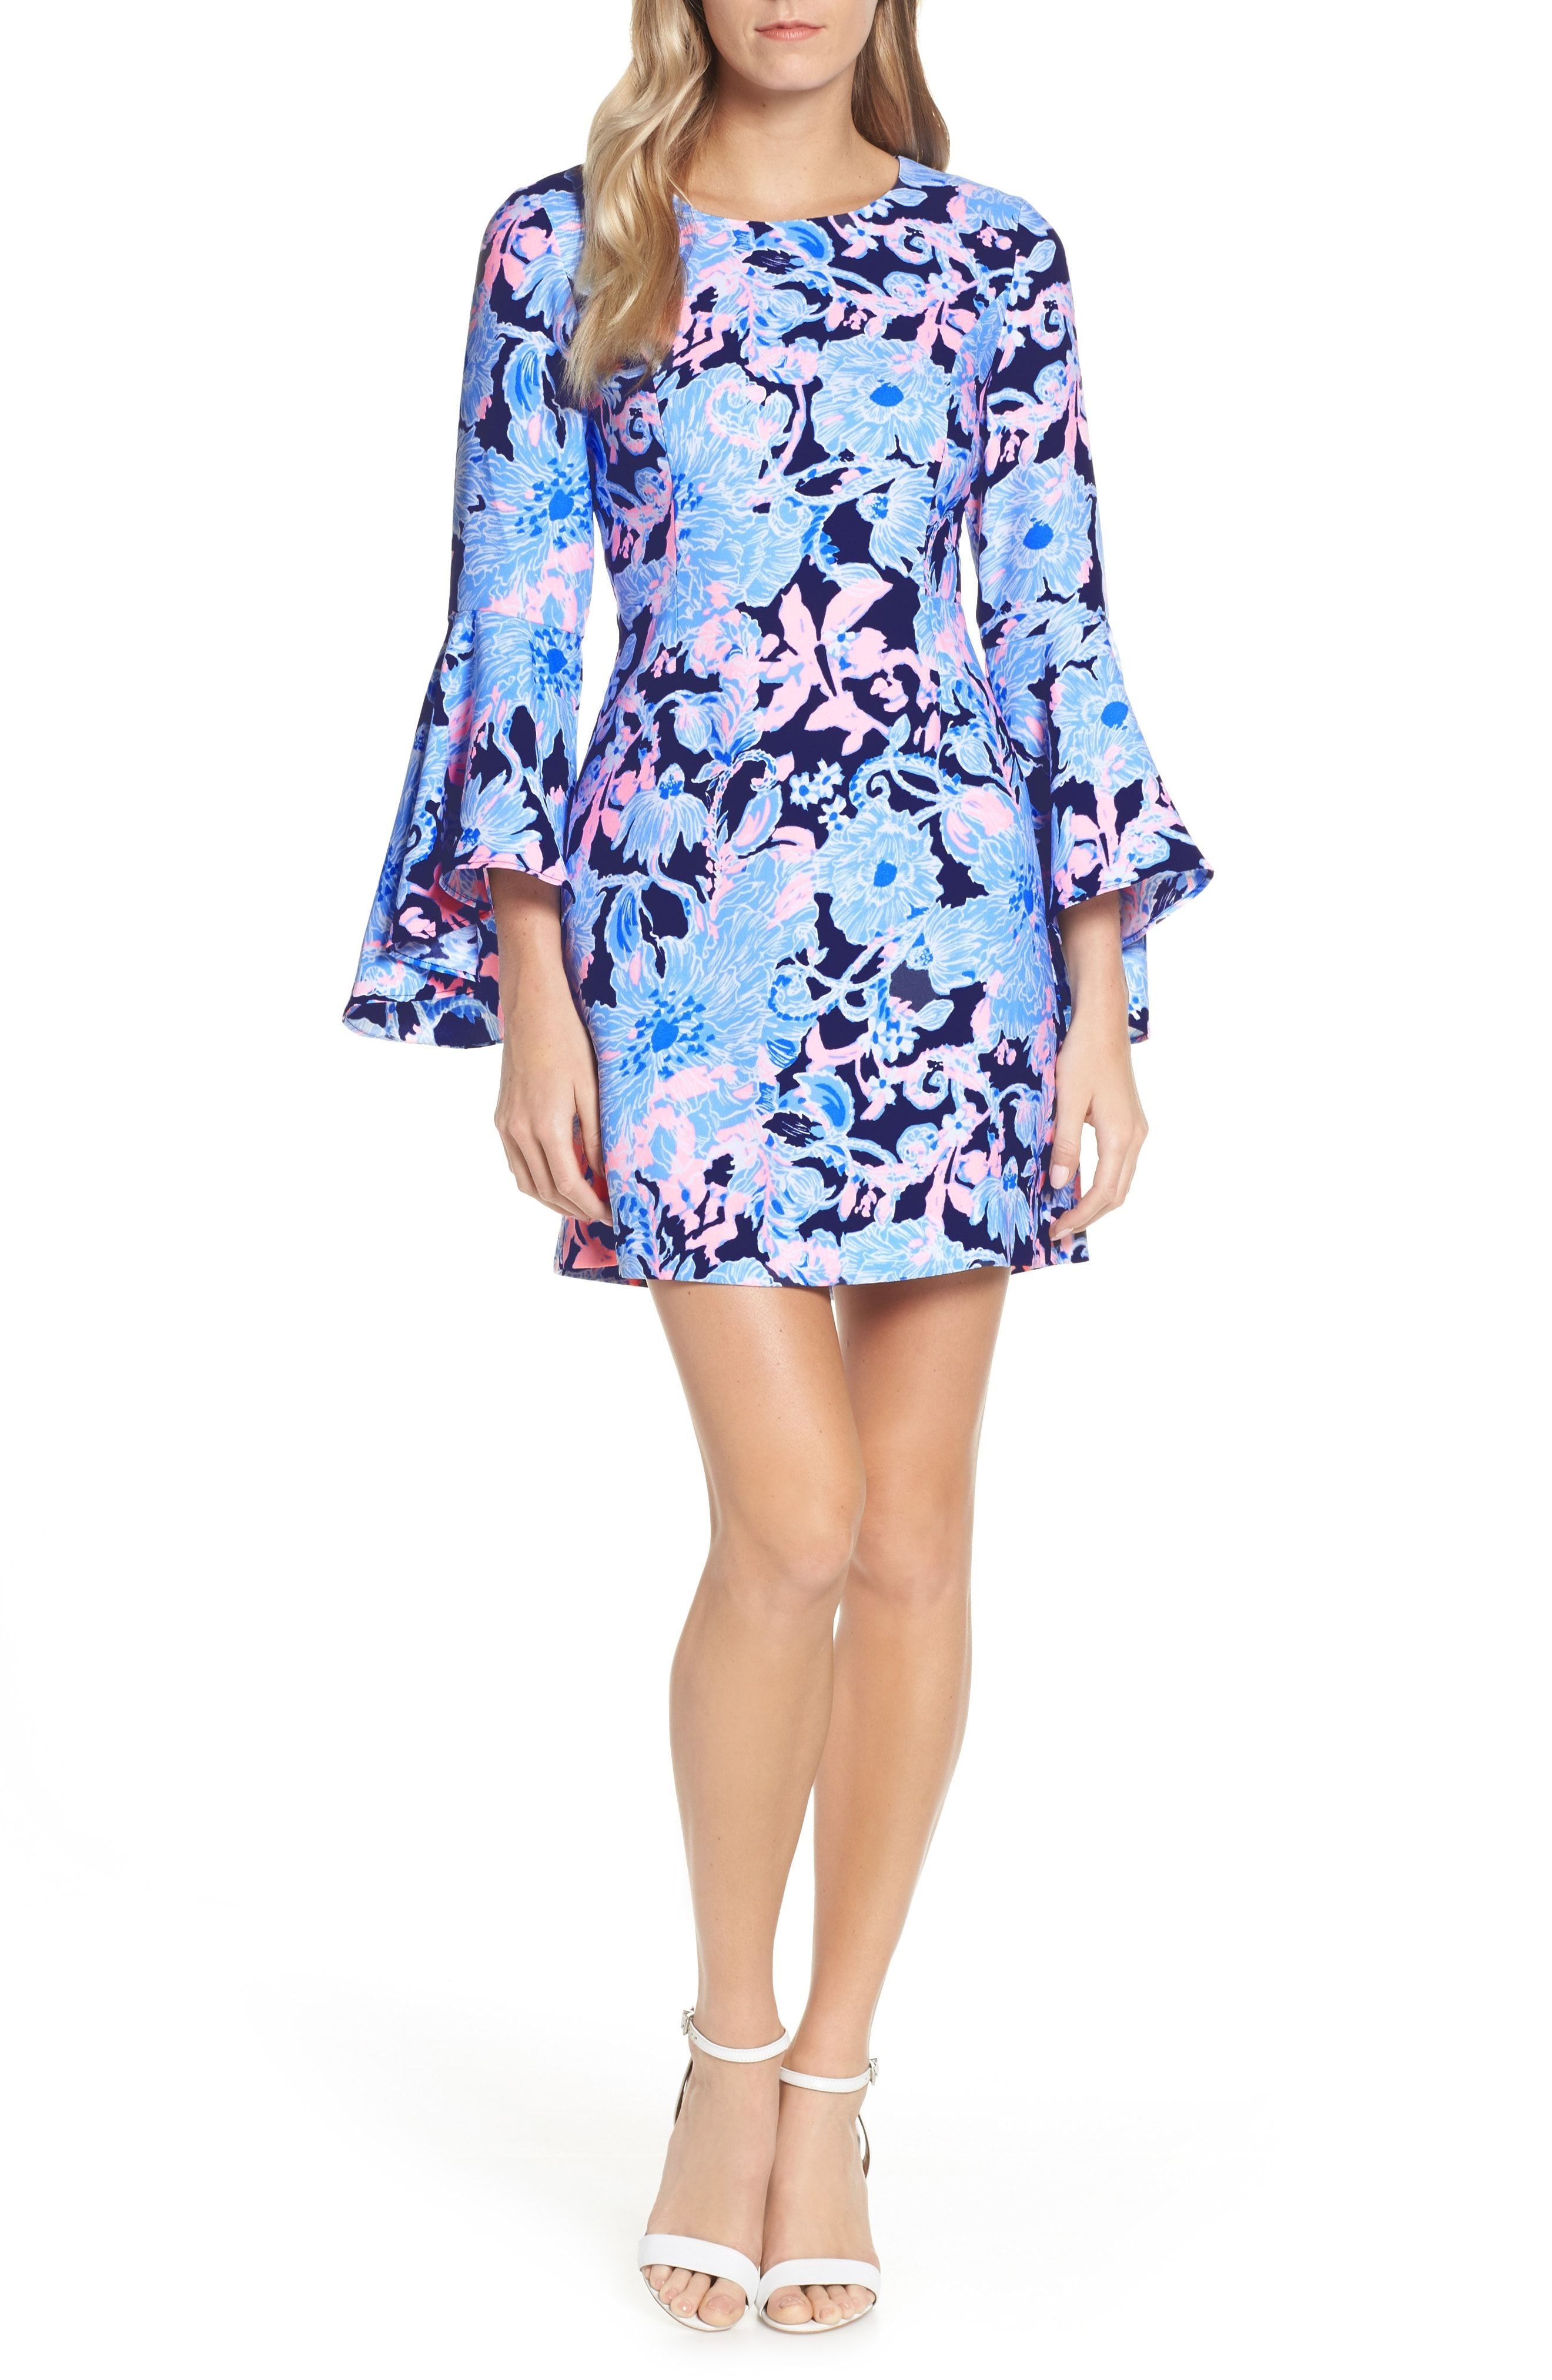 c402d0b05c07e 19 Kentucky Derby Outfits - What to Wear to the Kentucky Derby 2018